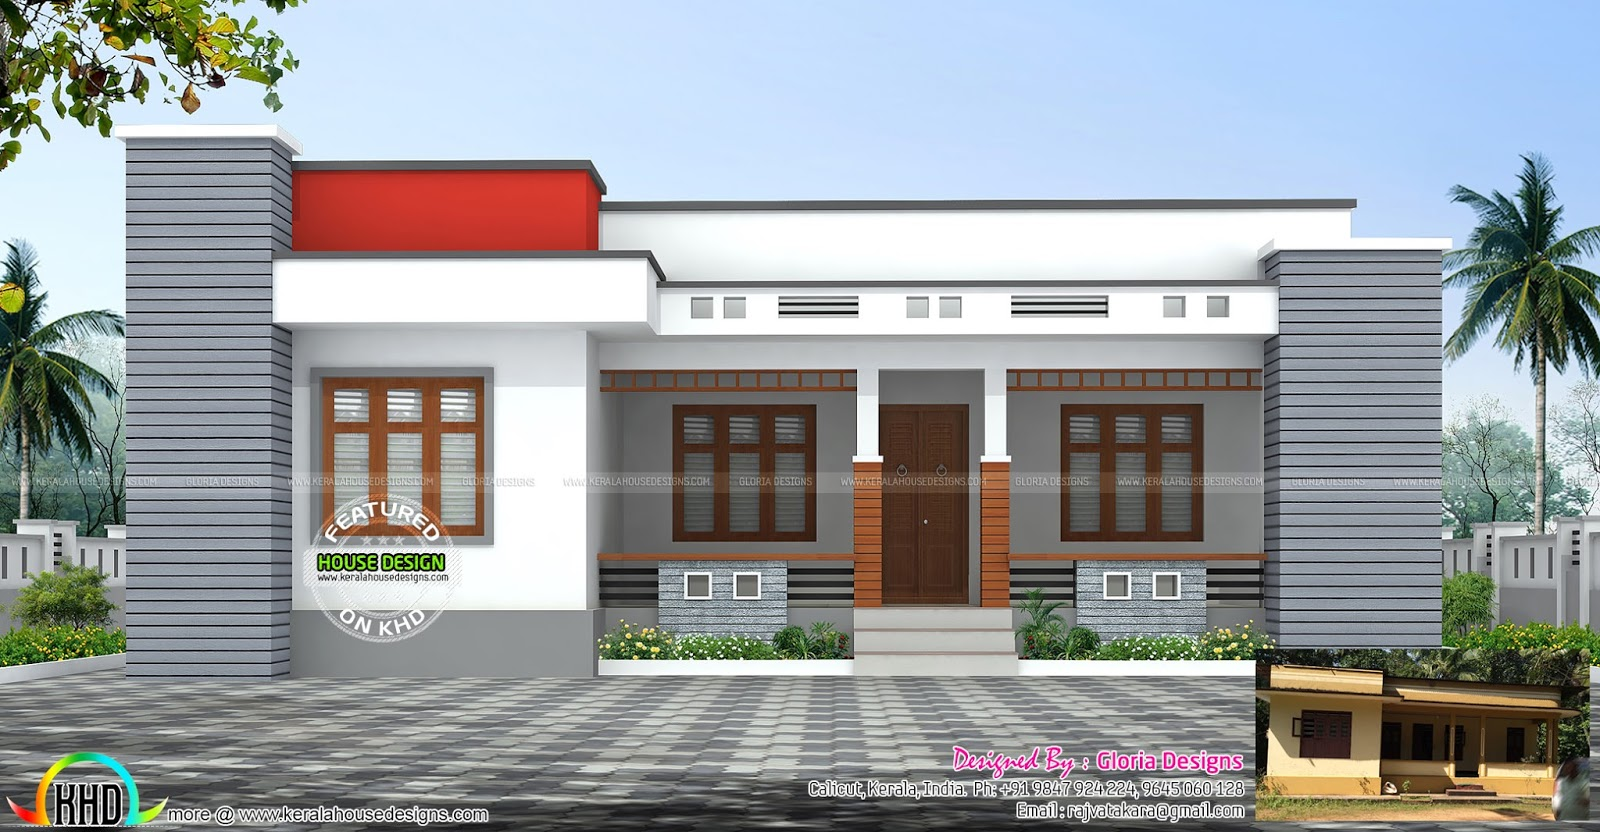 450 Sq Ft Home Design Html. 450. Home Remodeling Ideas Nalukettu Kerala Home Design on 2 story house design, colonial style home design, kerala house interior design,